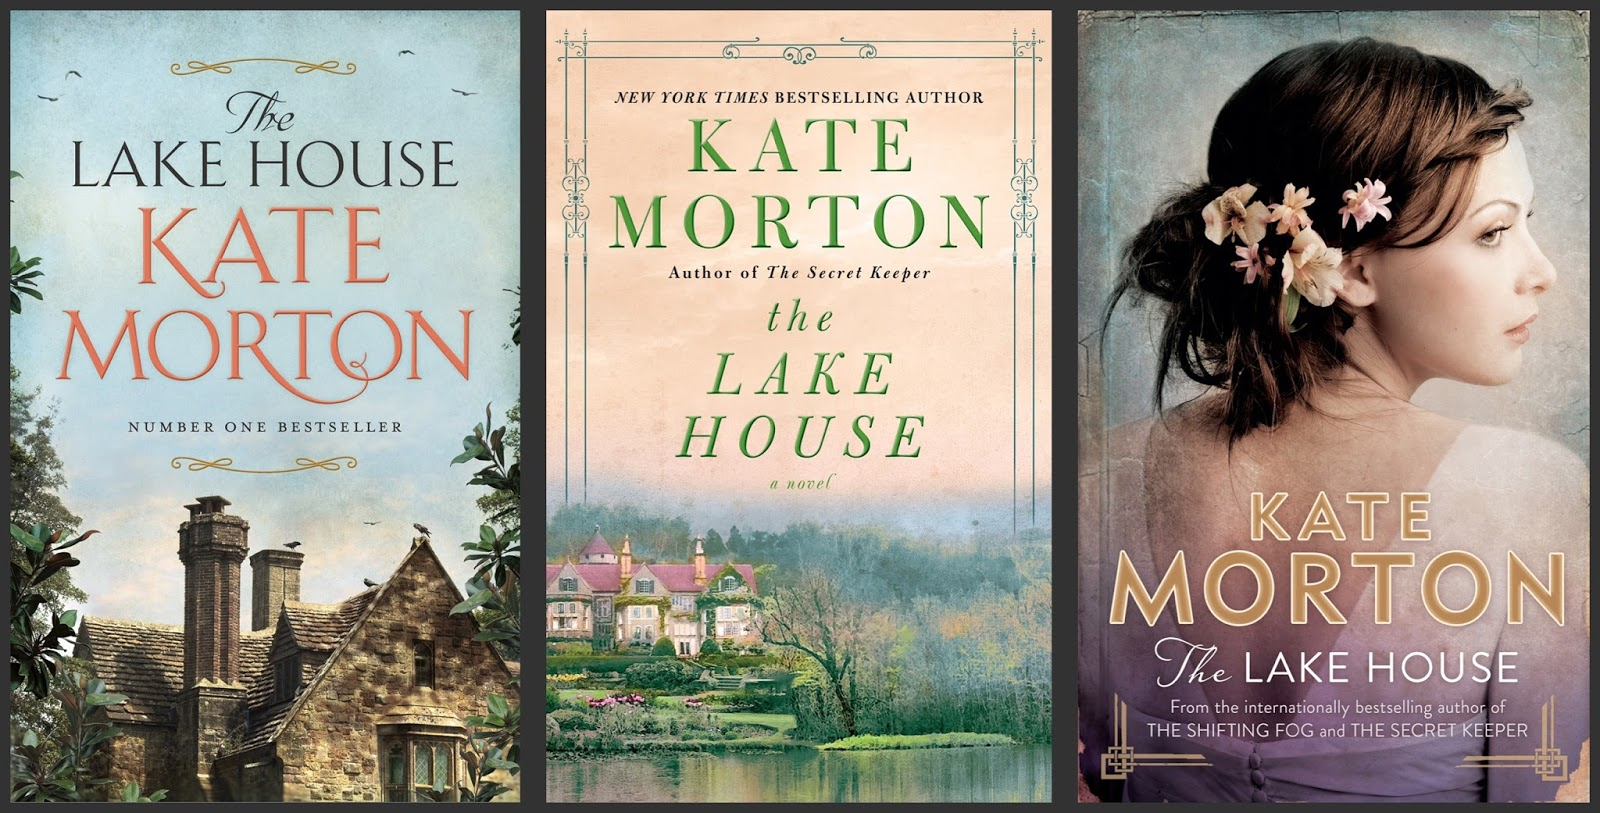 El rinc n de solita rese a el ltimo adi s de kate morton the lake house - Kate morton la casa del lago ...